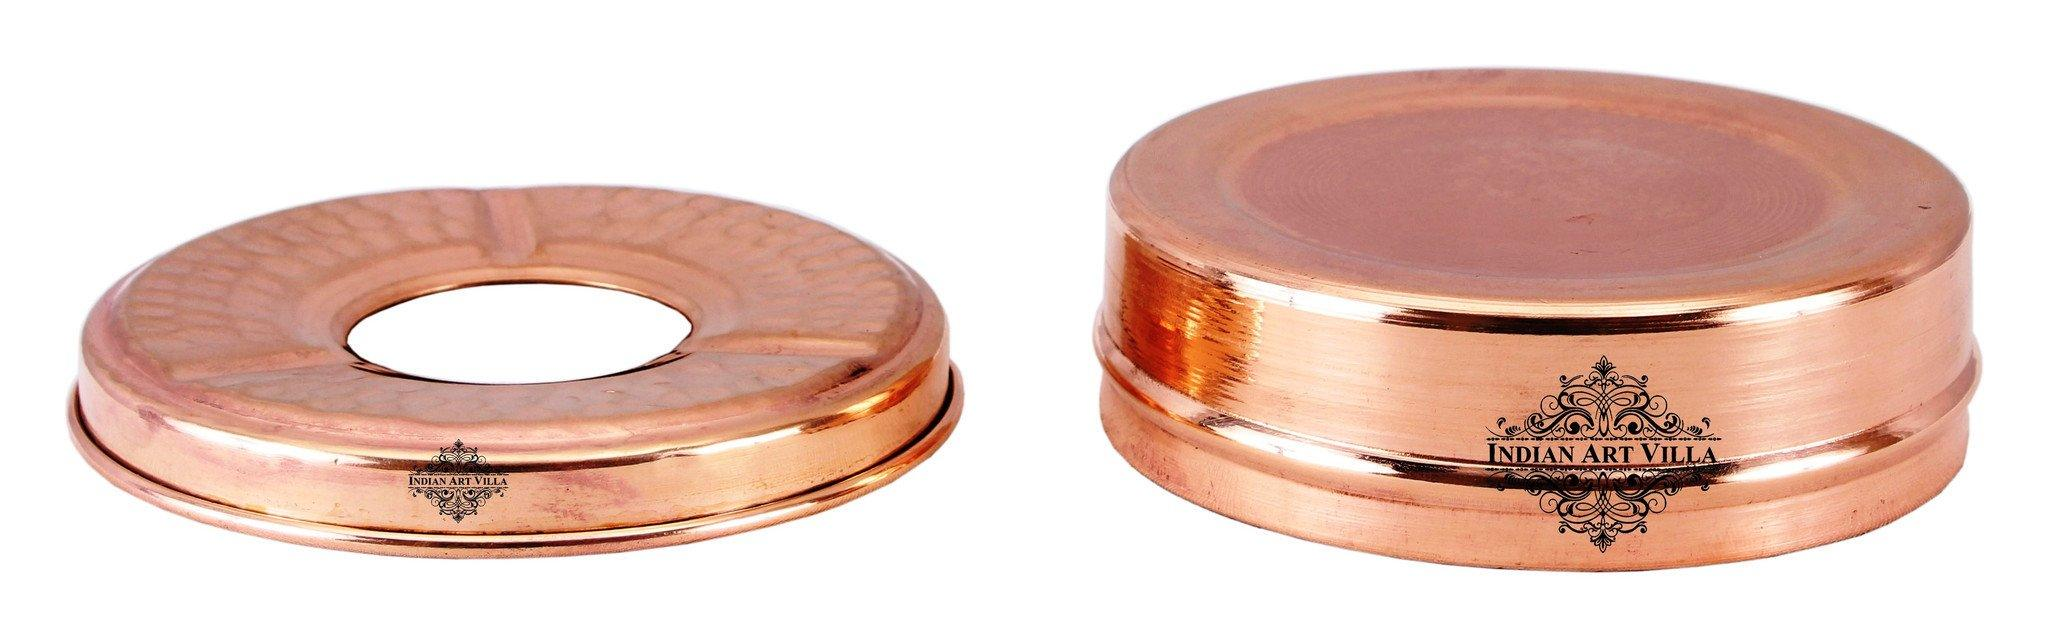 Copper Old Style Ashtray with 3 Cigerate Holders - Indoor Outdoor